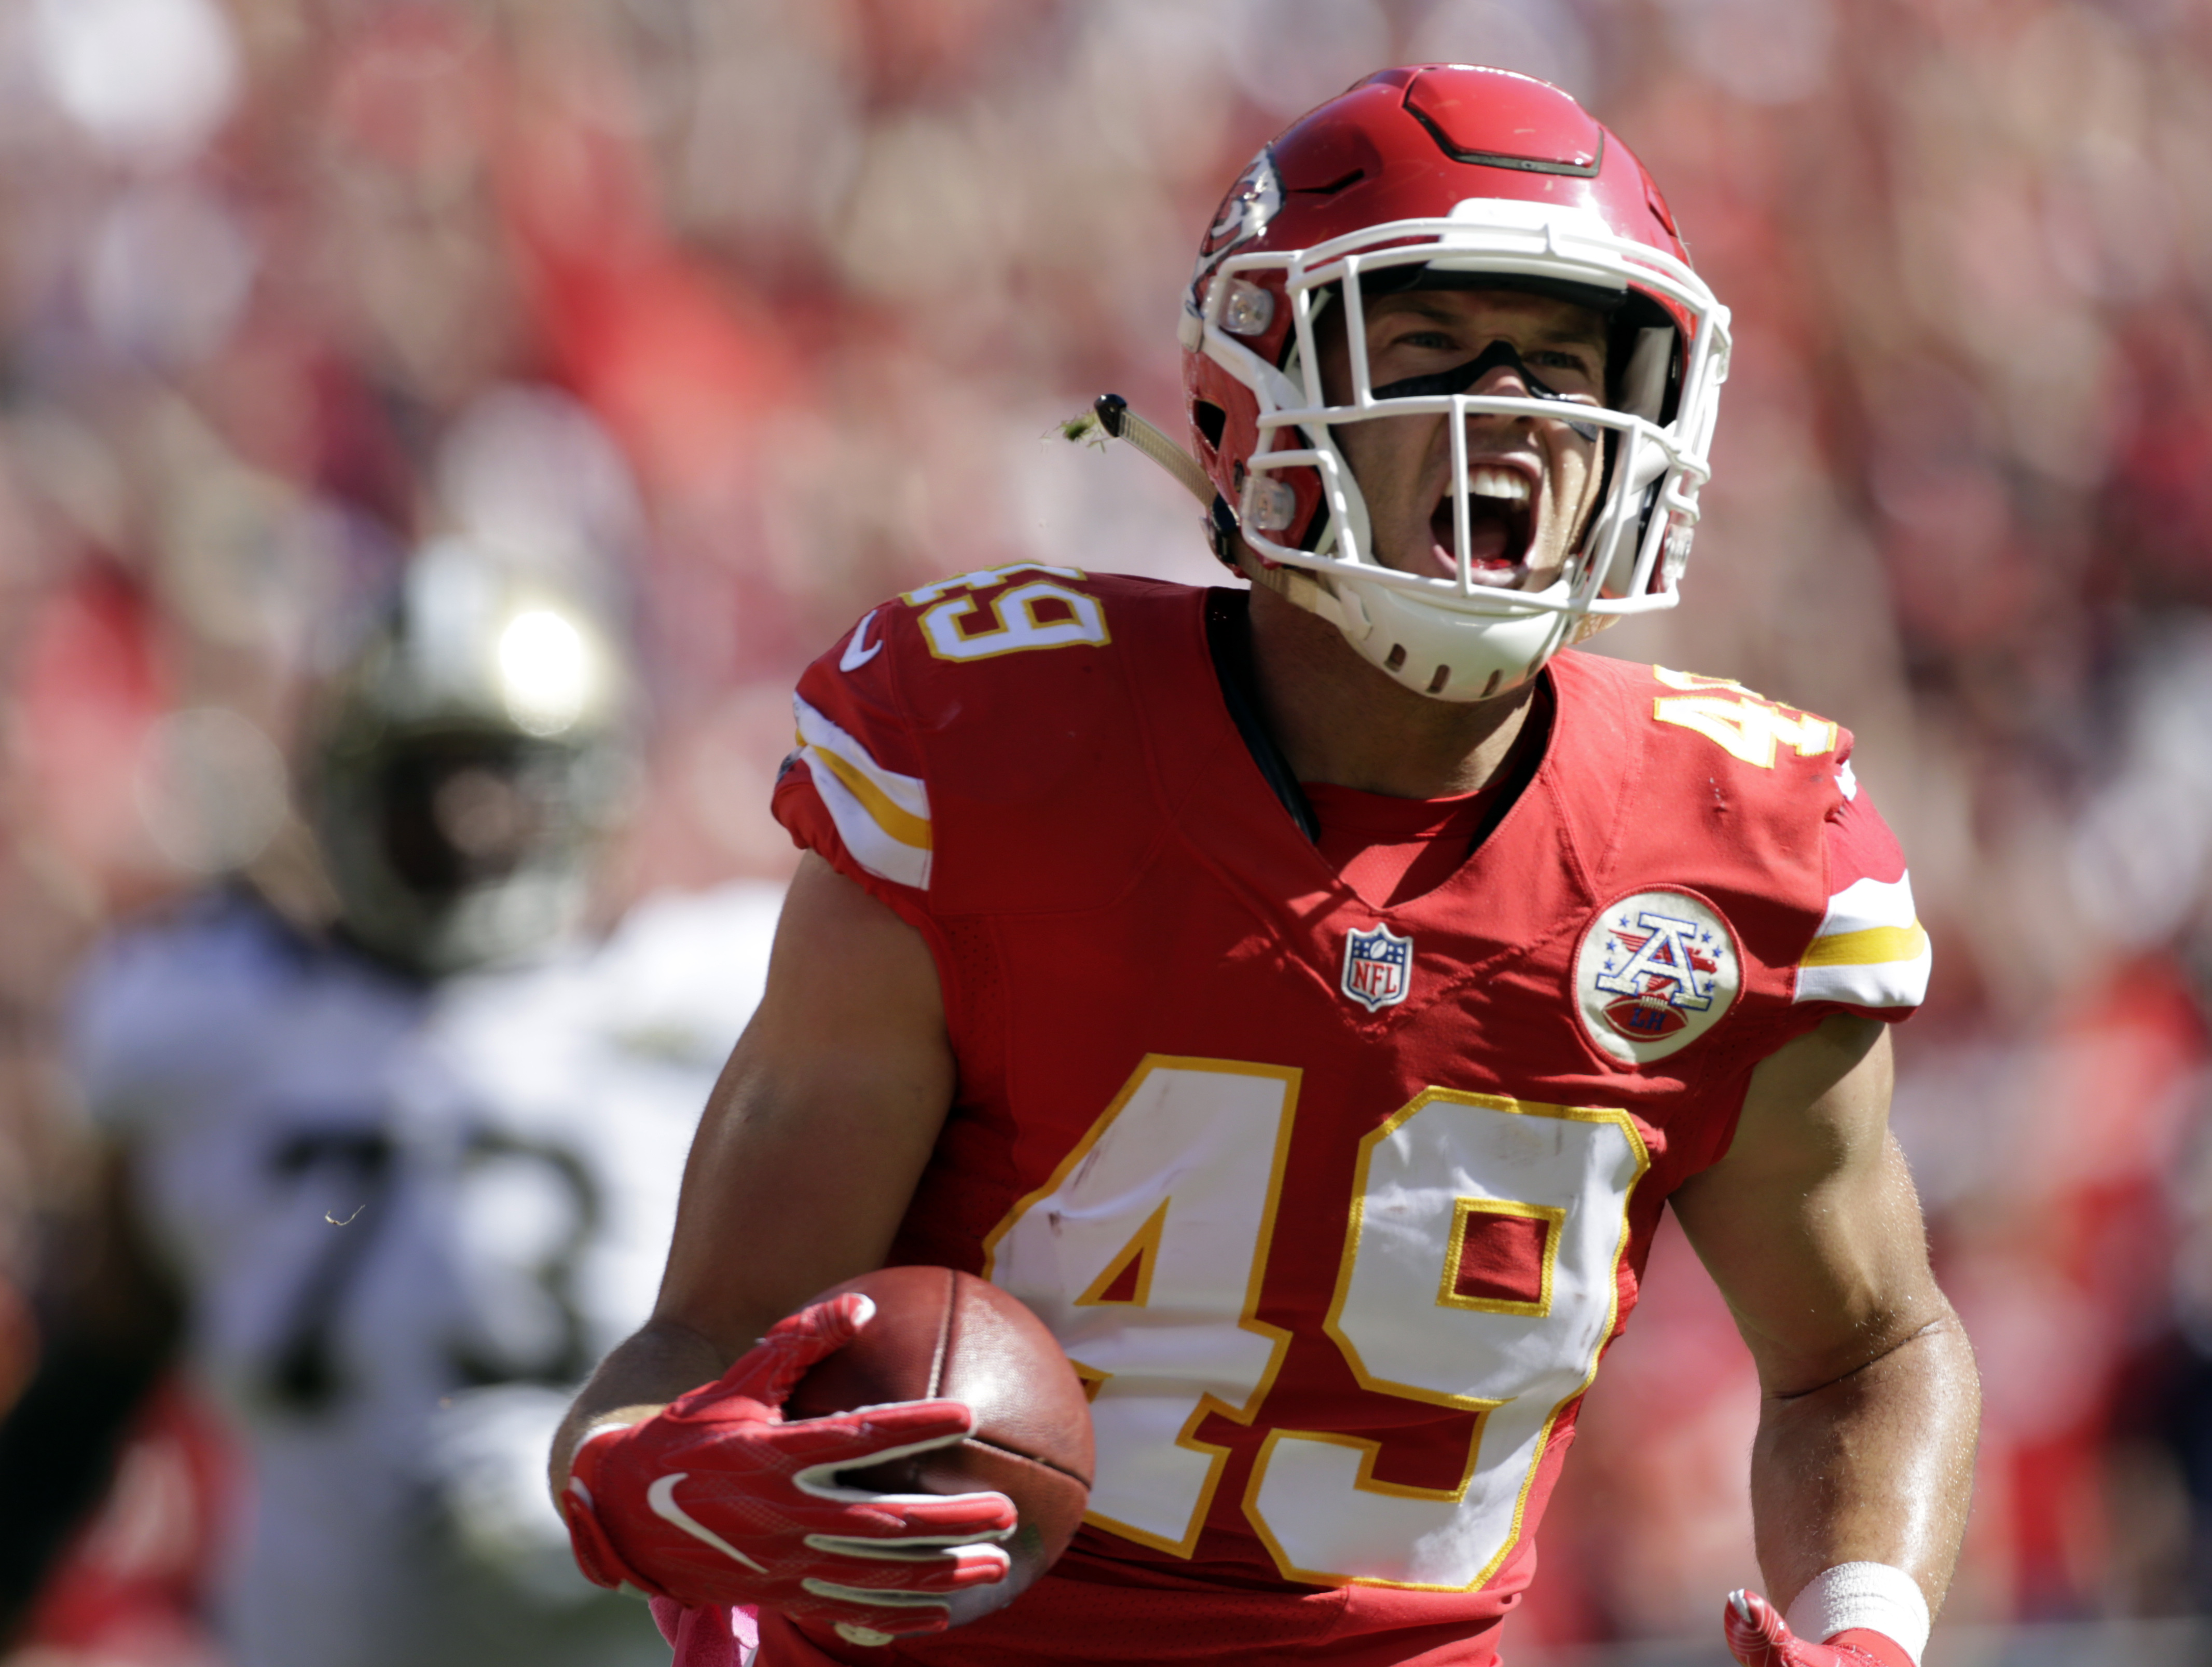 Kansas City Chiefs defensive back Daniel Sorensen (49) celebrates his touchdown following an interception of a throw by New Orleans Saints quarterback Drew Brees during the first half of an NFL football game in Kansas City, Mo., Sunday, Oct. 23, 2016. (AP